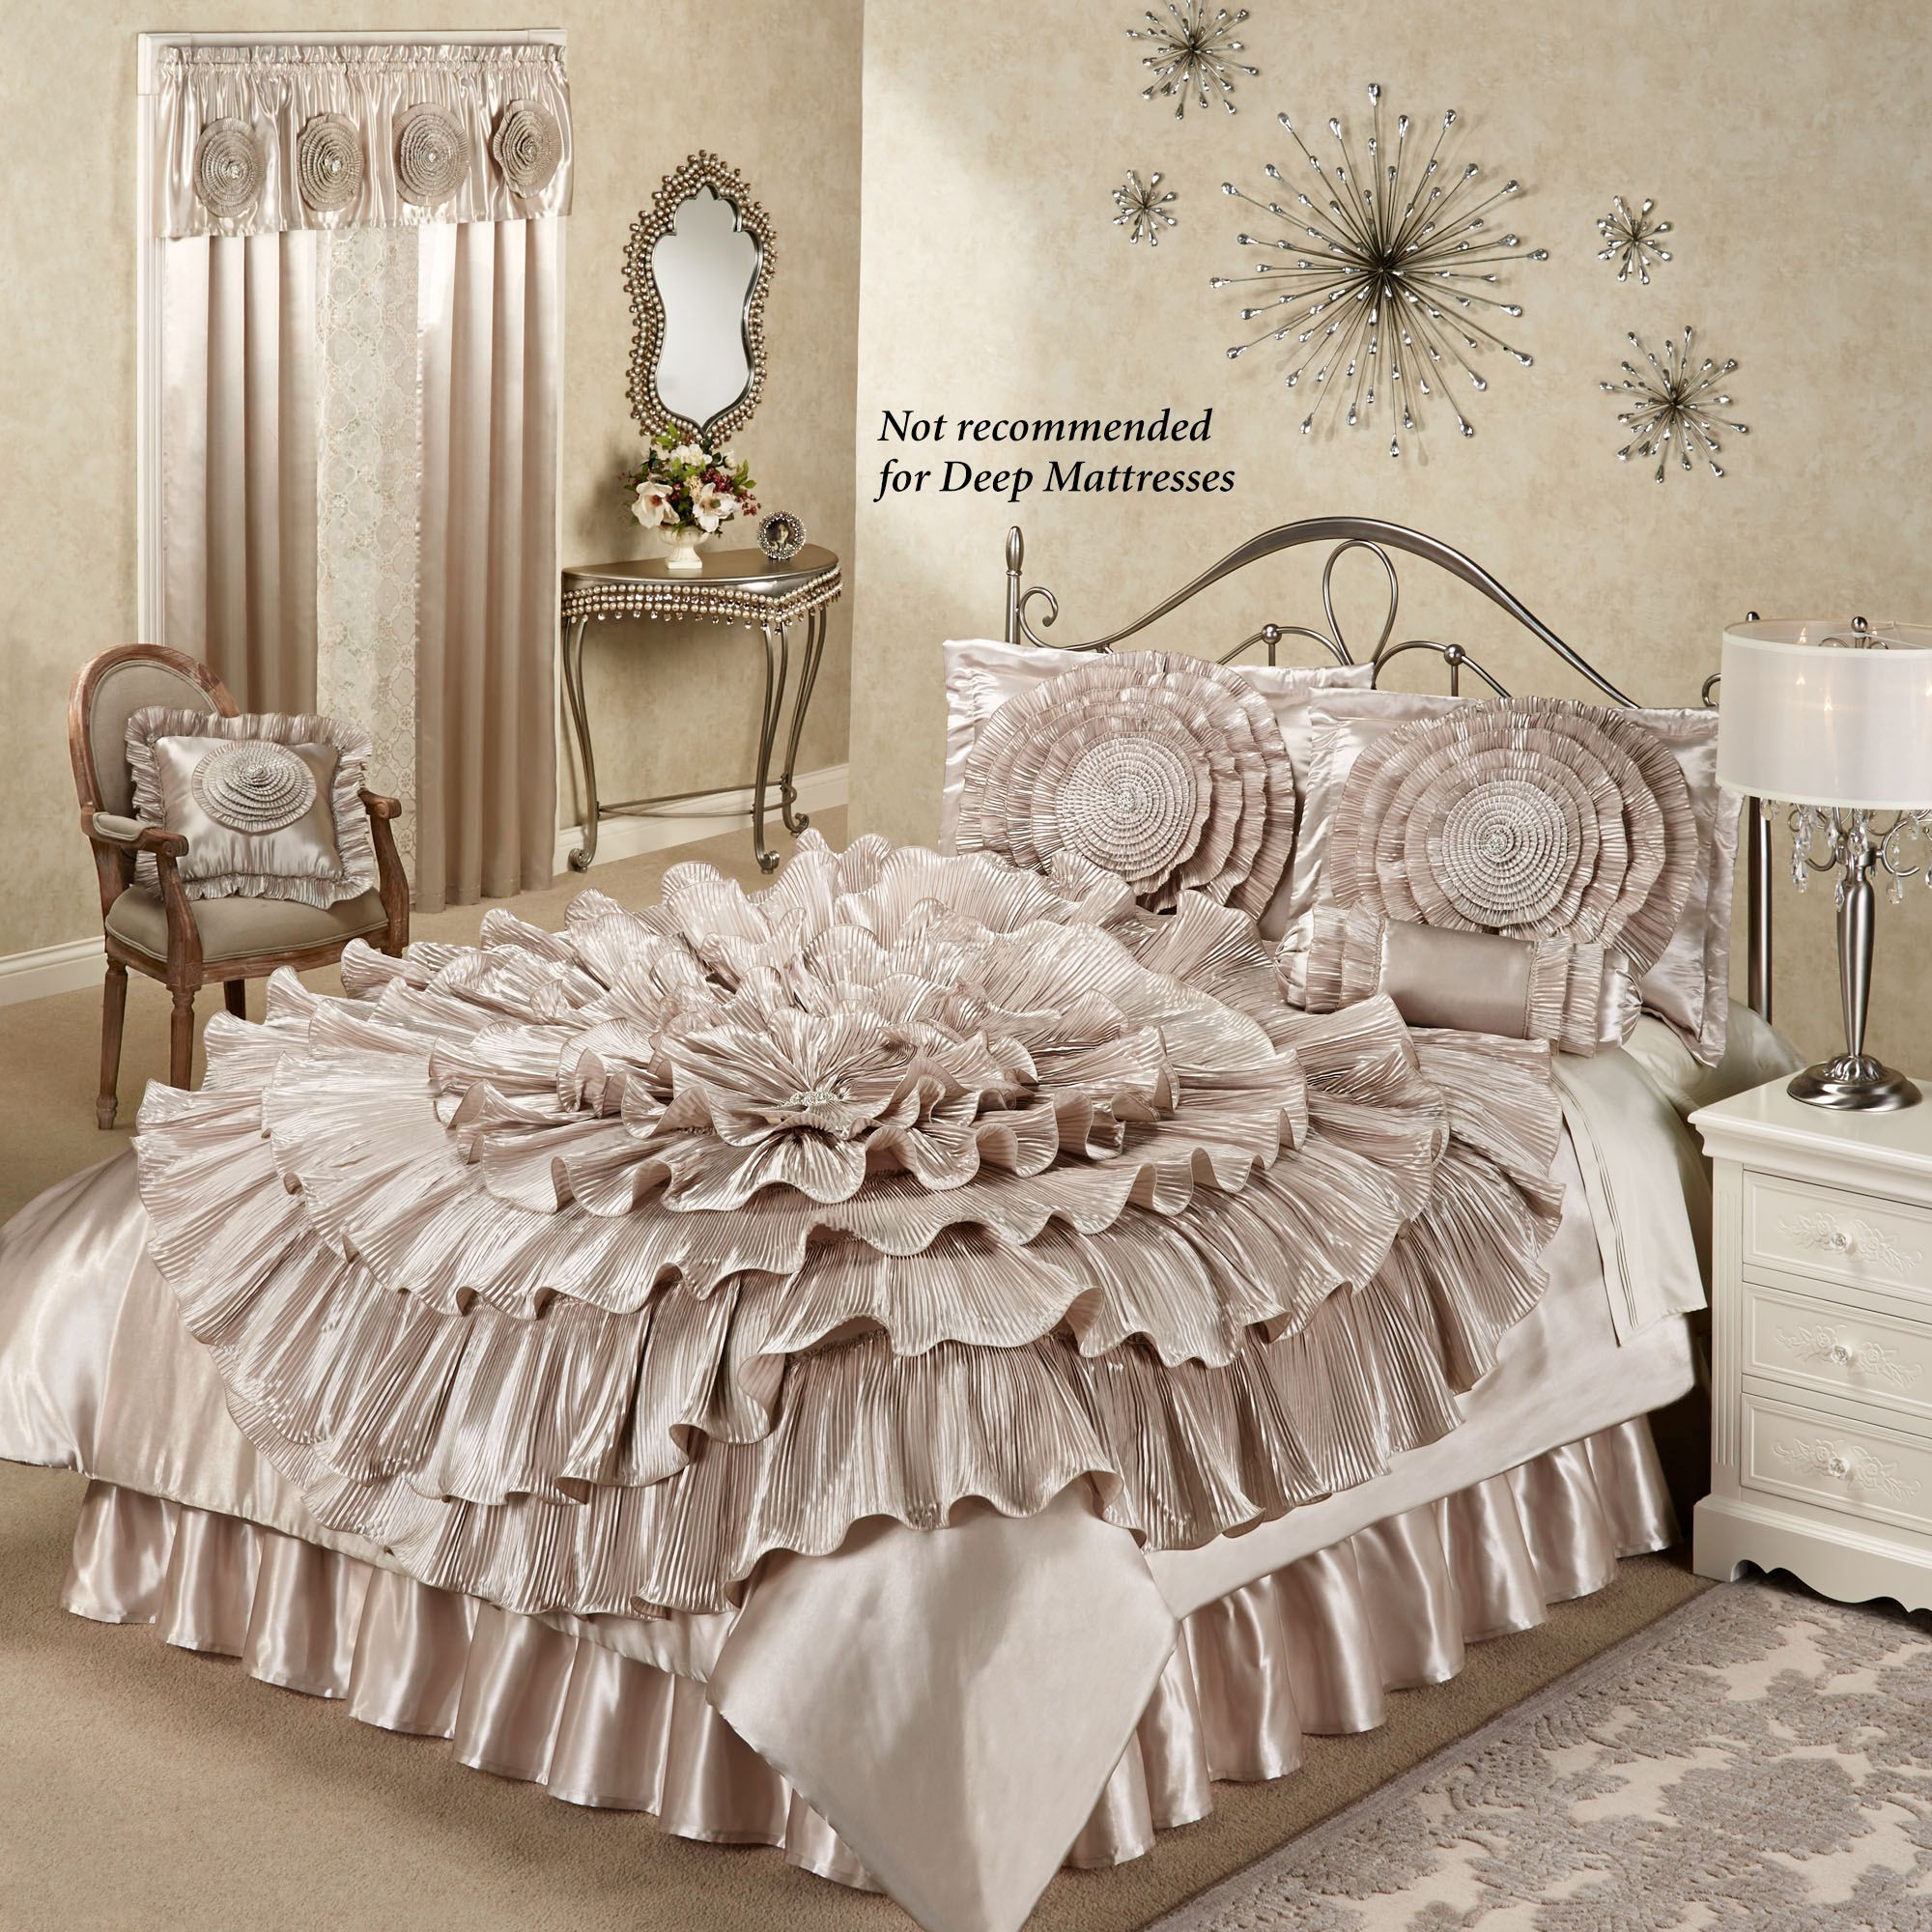 Touch Of Class Bedding Ruffled Romance Champagne Rosette Comforter Bed Set